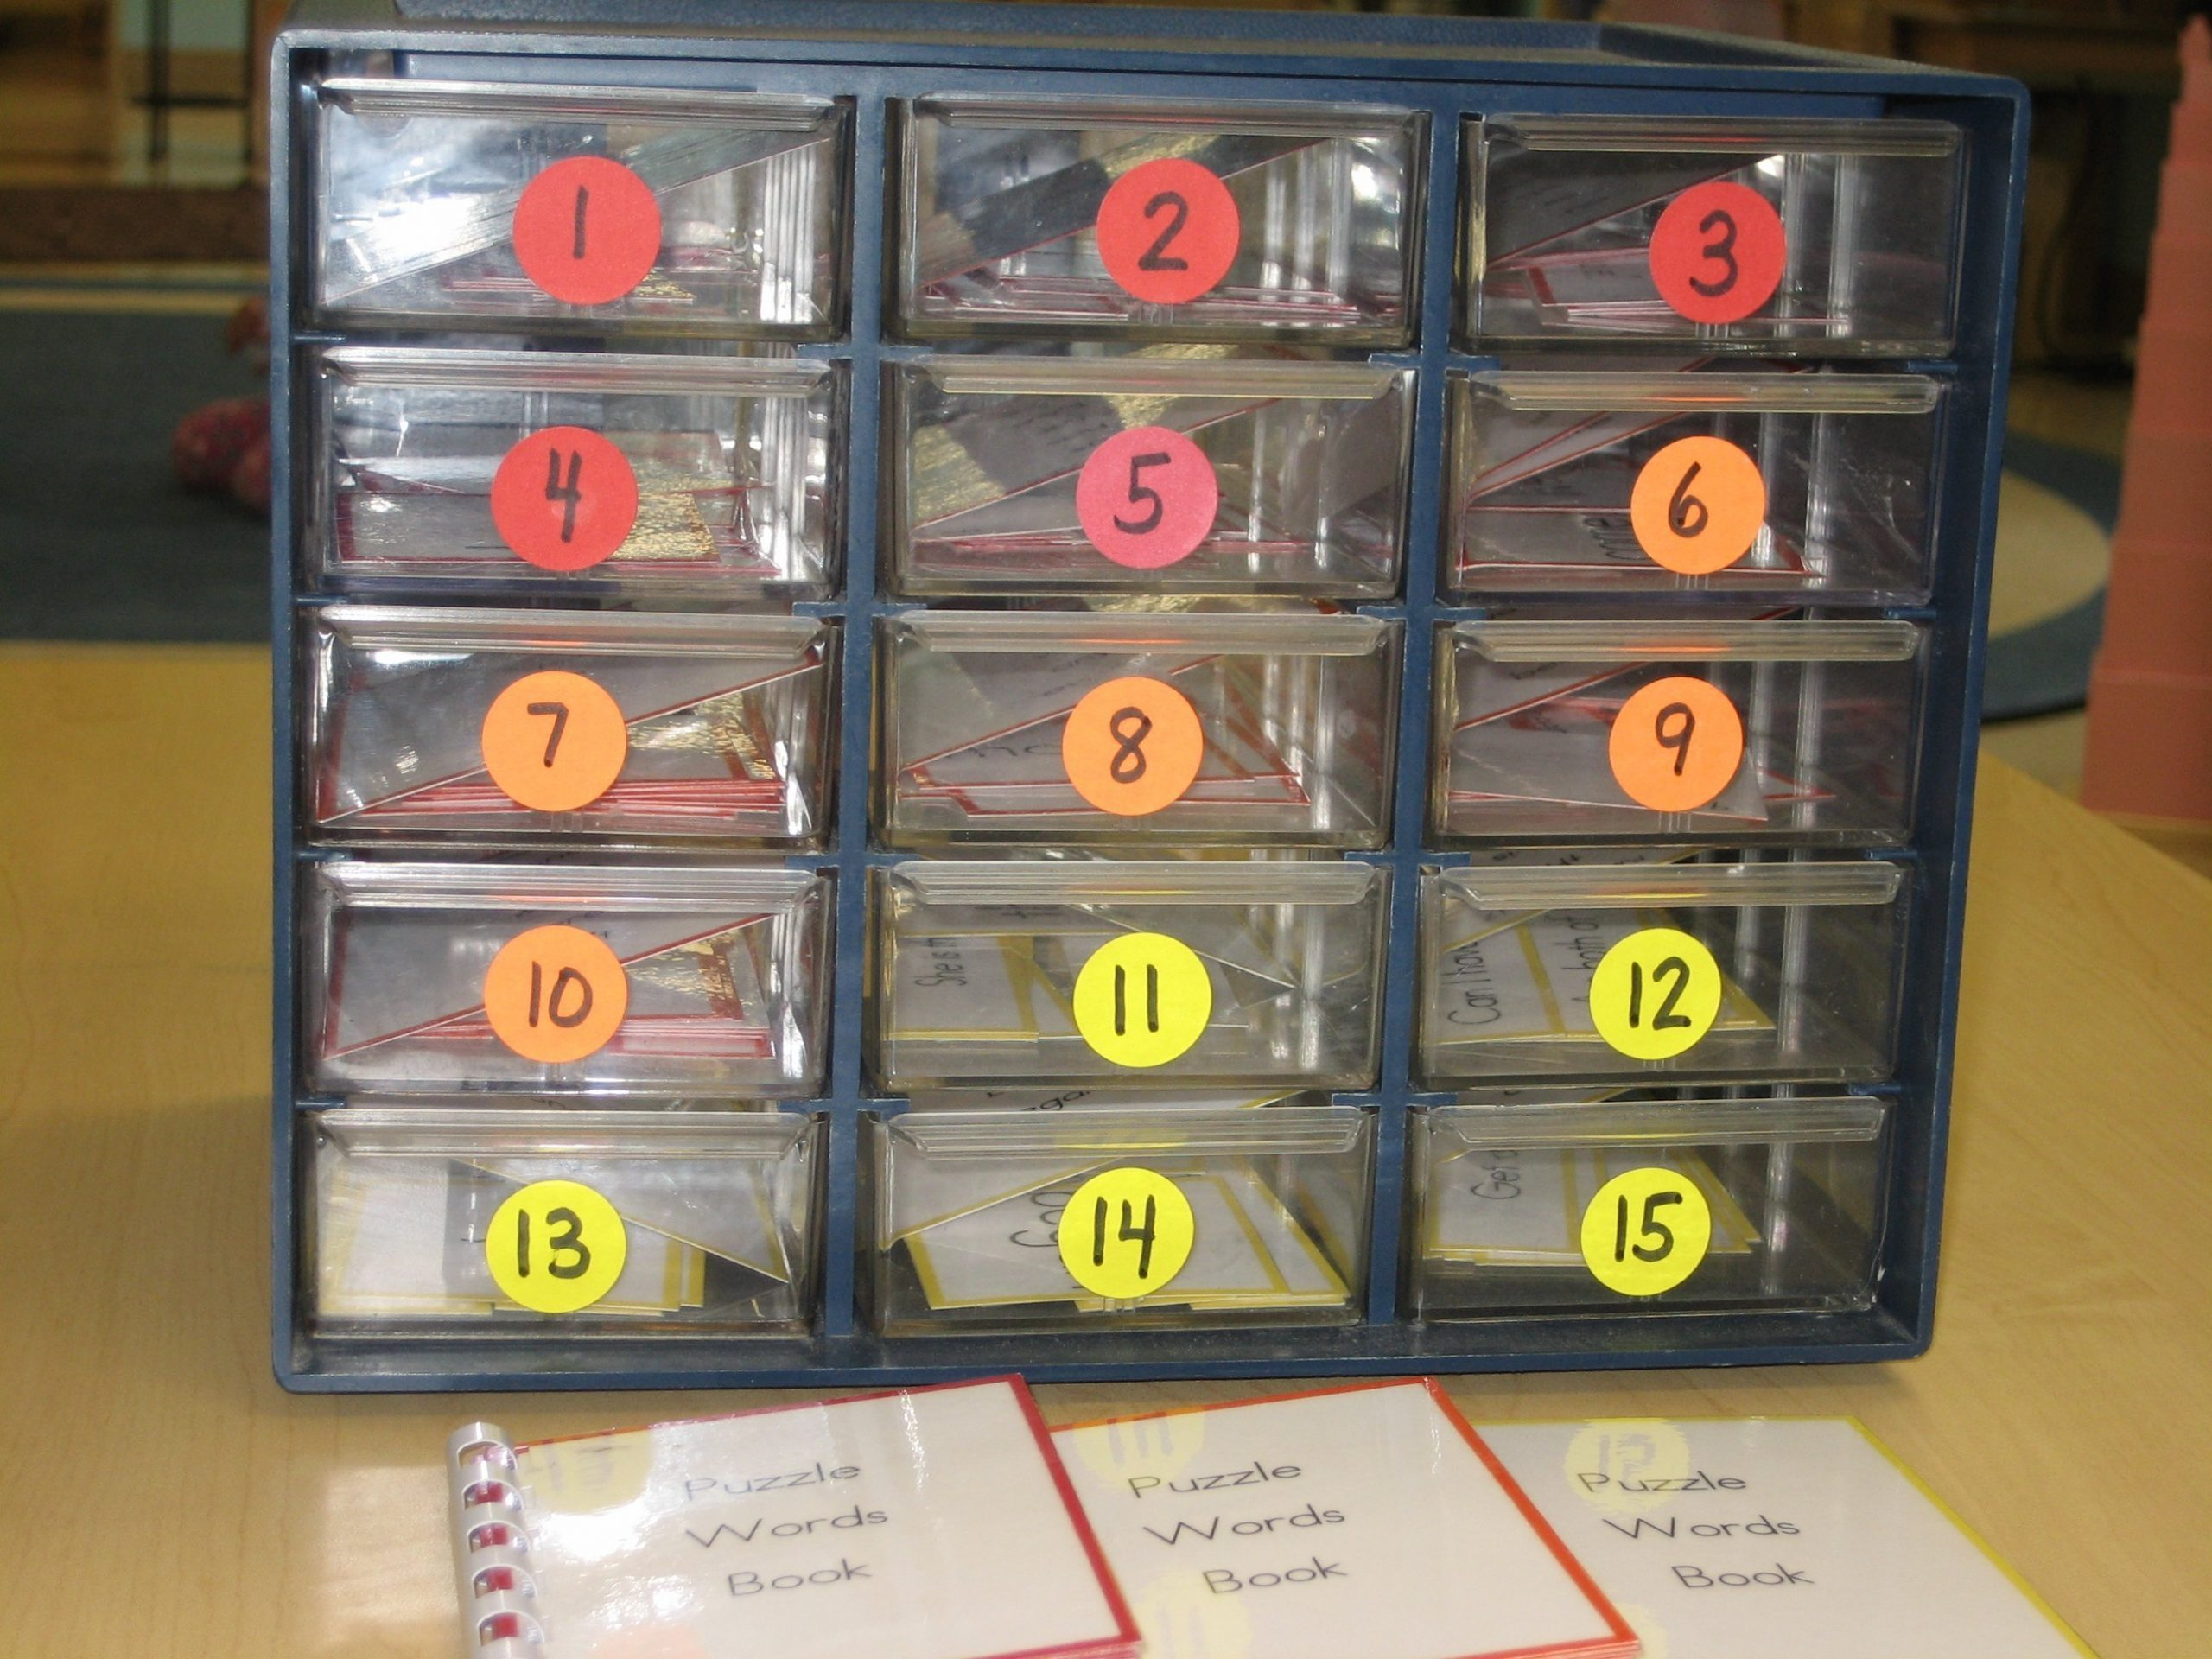 Puzzle Words - Drawers